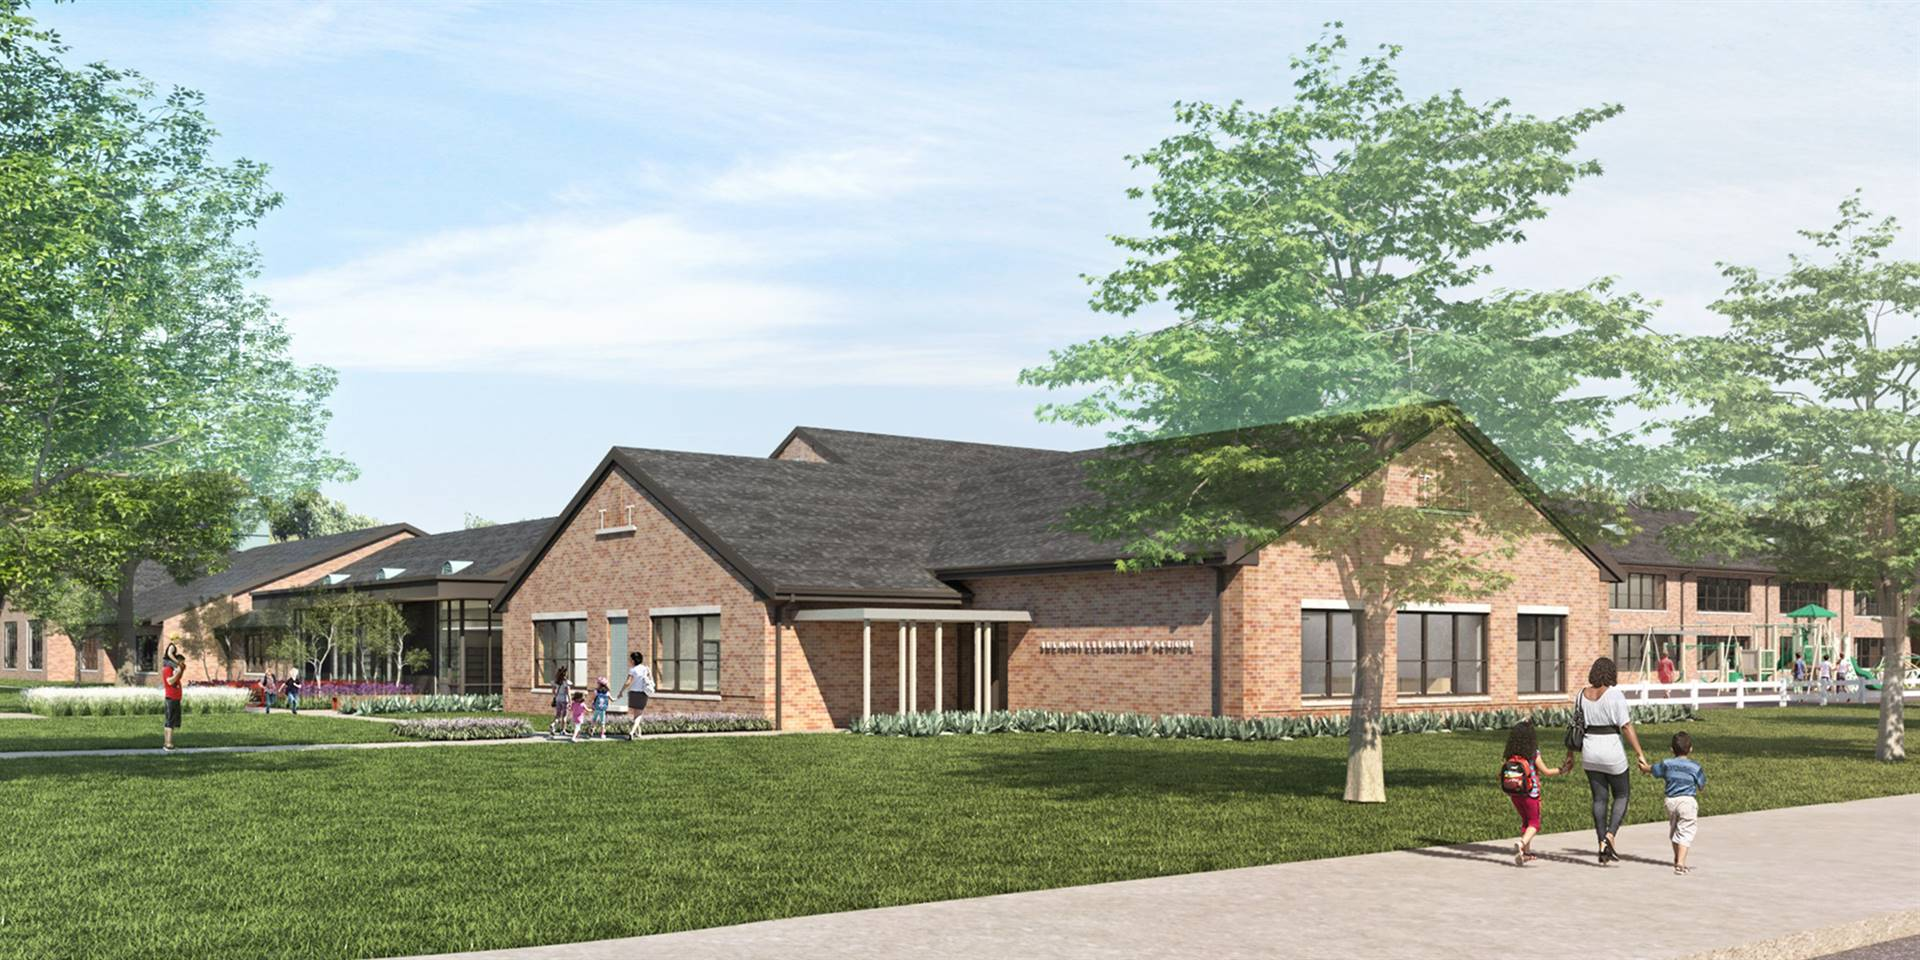 A rendering of the new kindergarten addition to Tremont Elementary School